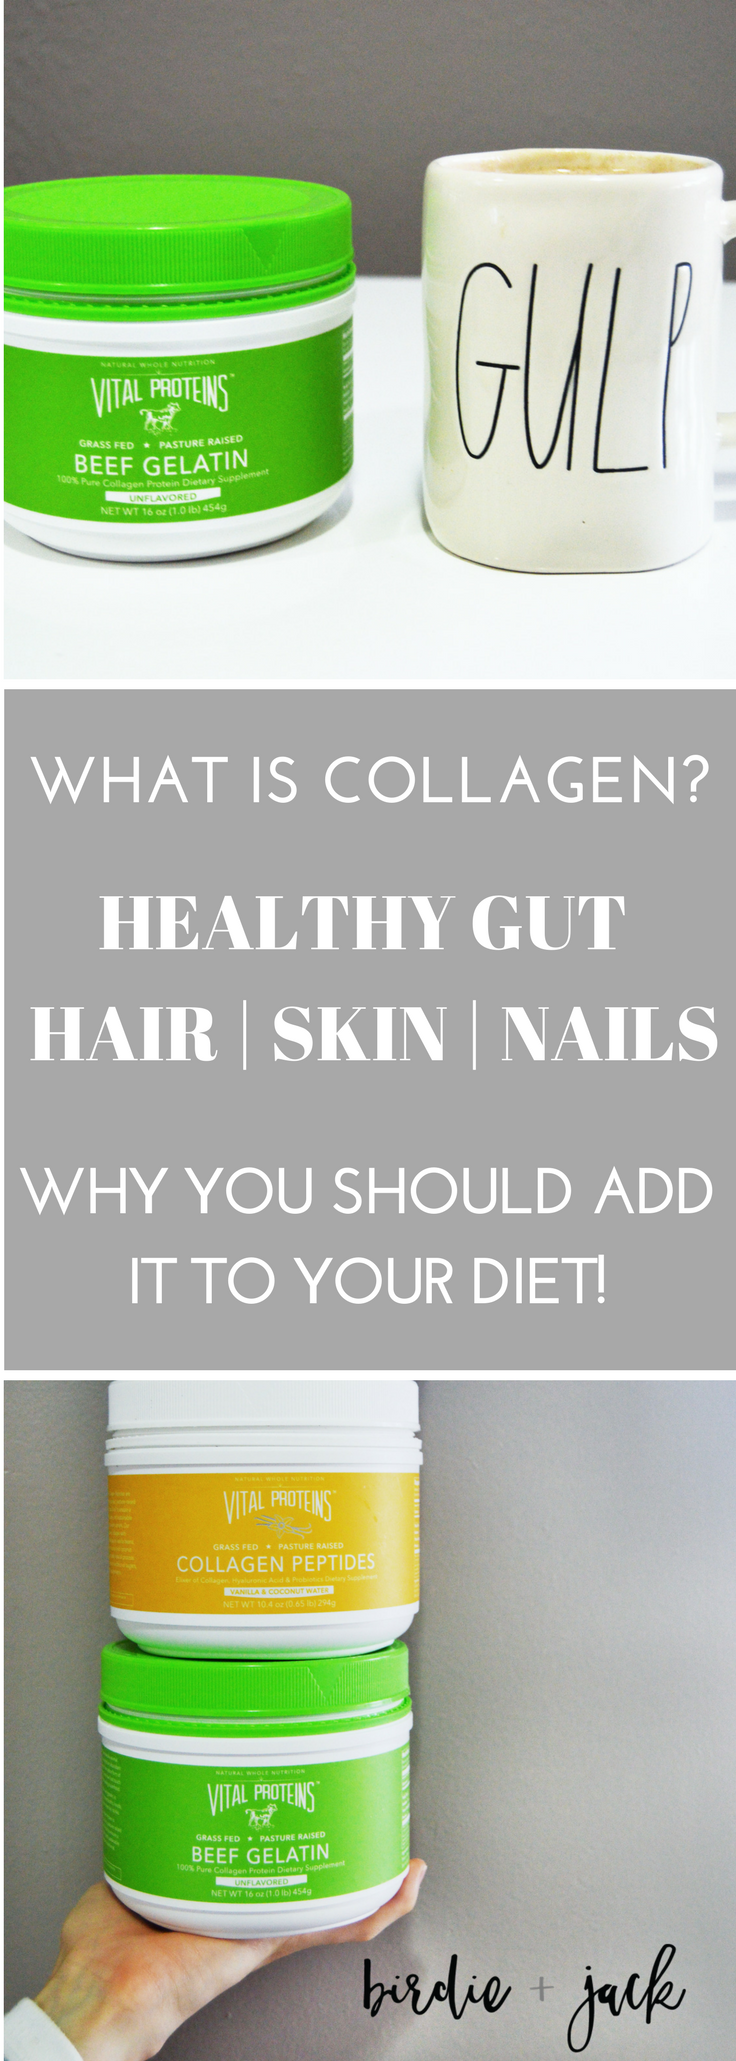 What is Collagen? Why you should add it to your diet and how it can boost your health.